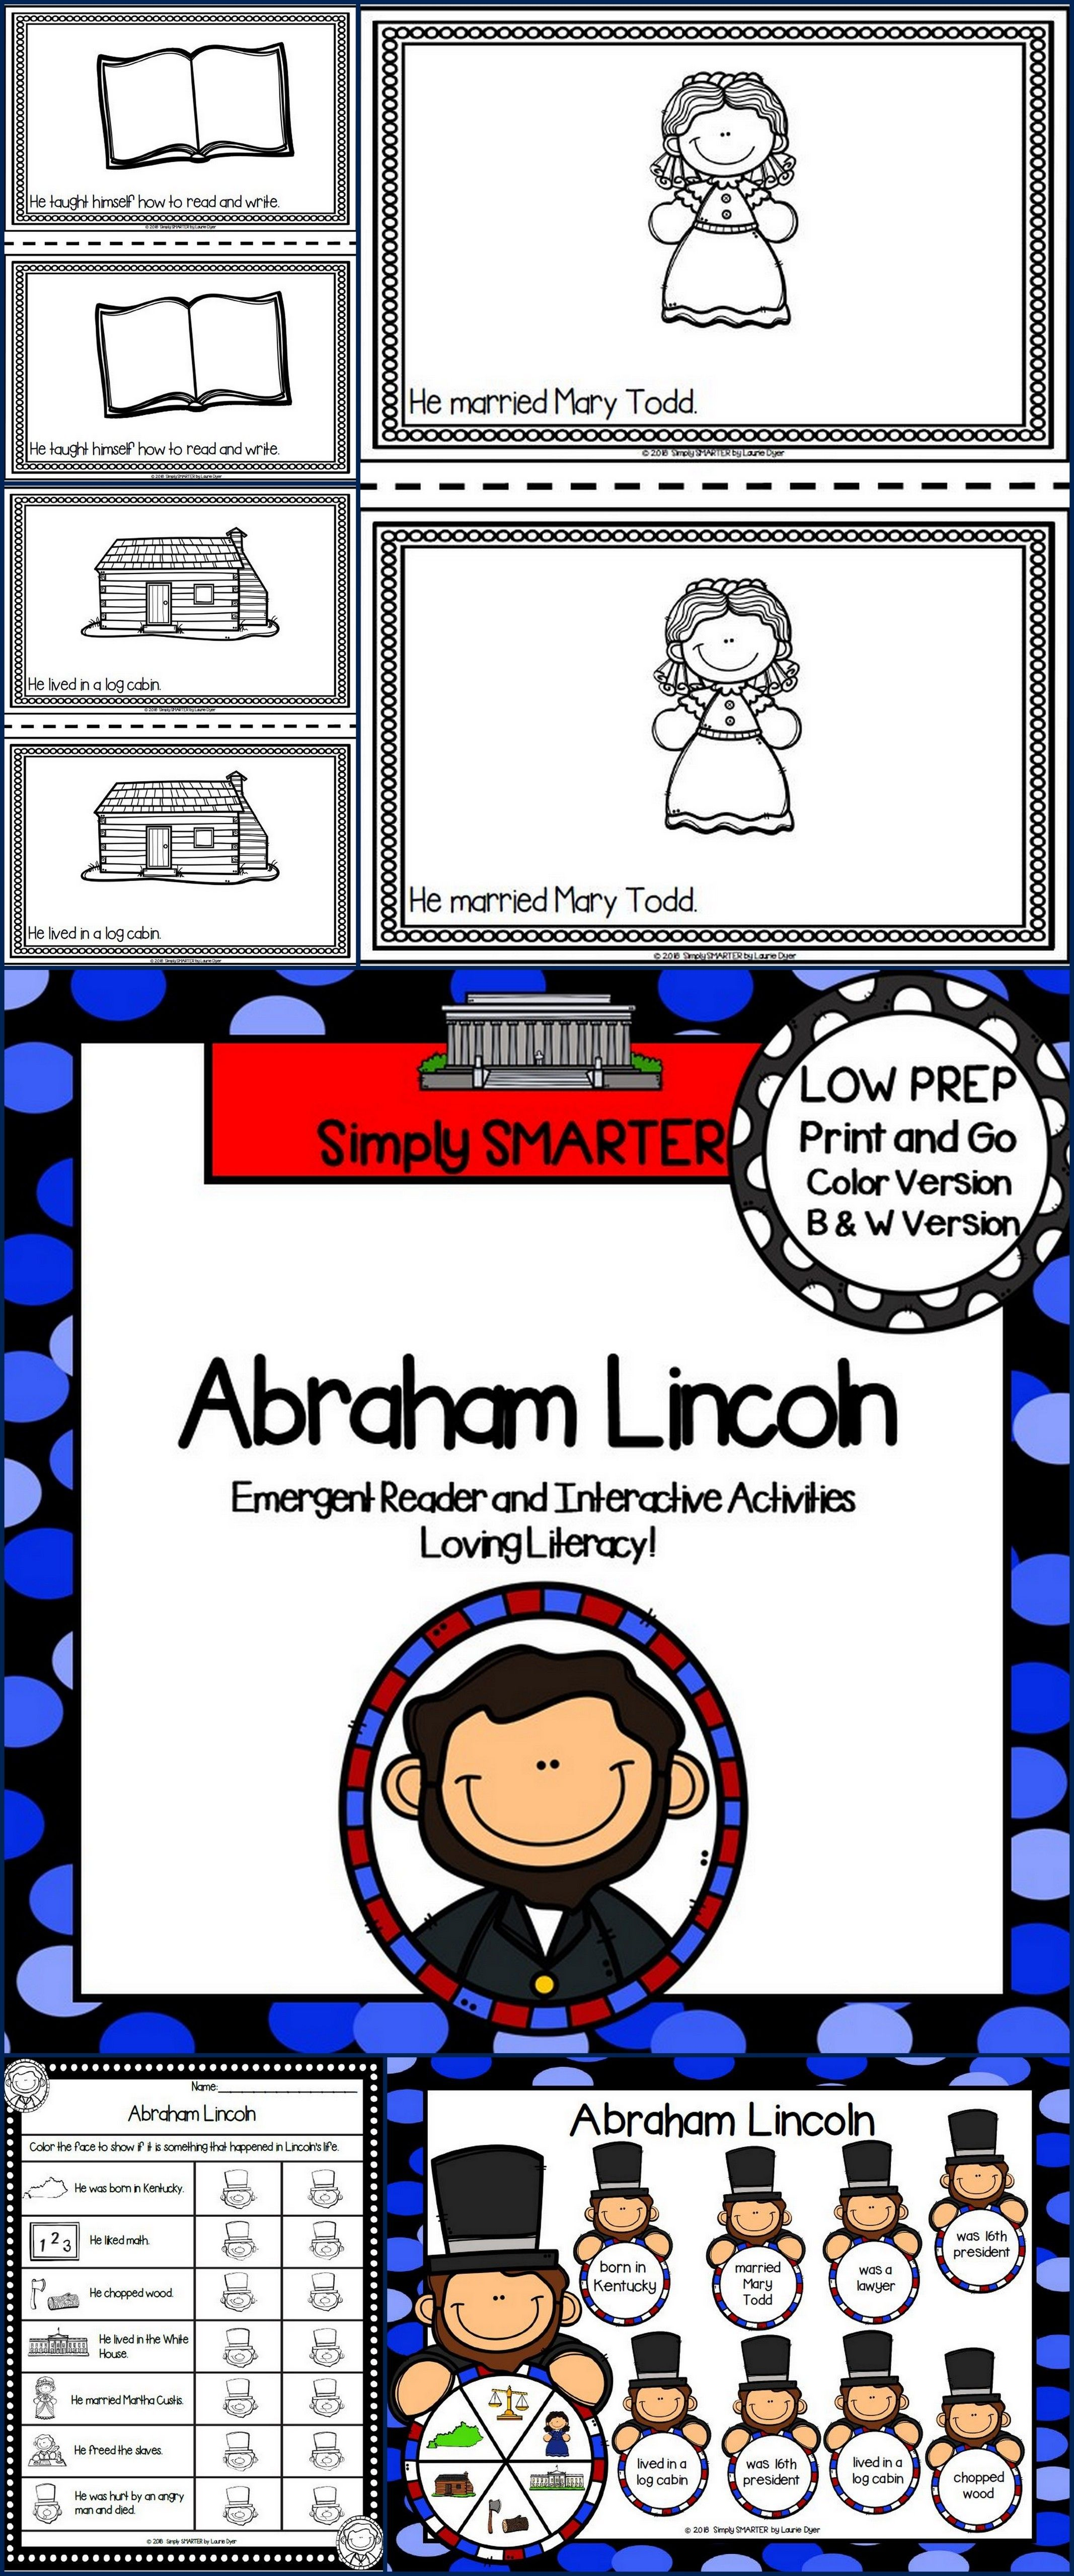 Abraham Lincoln Activities For Elementary